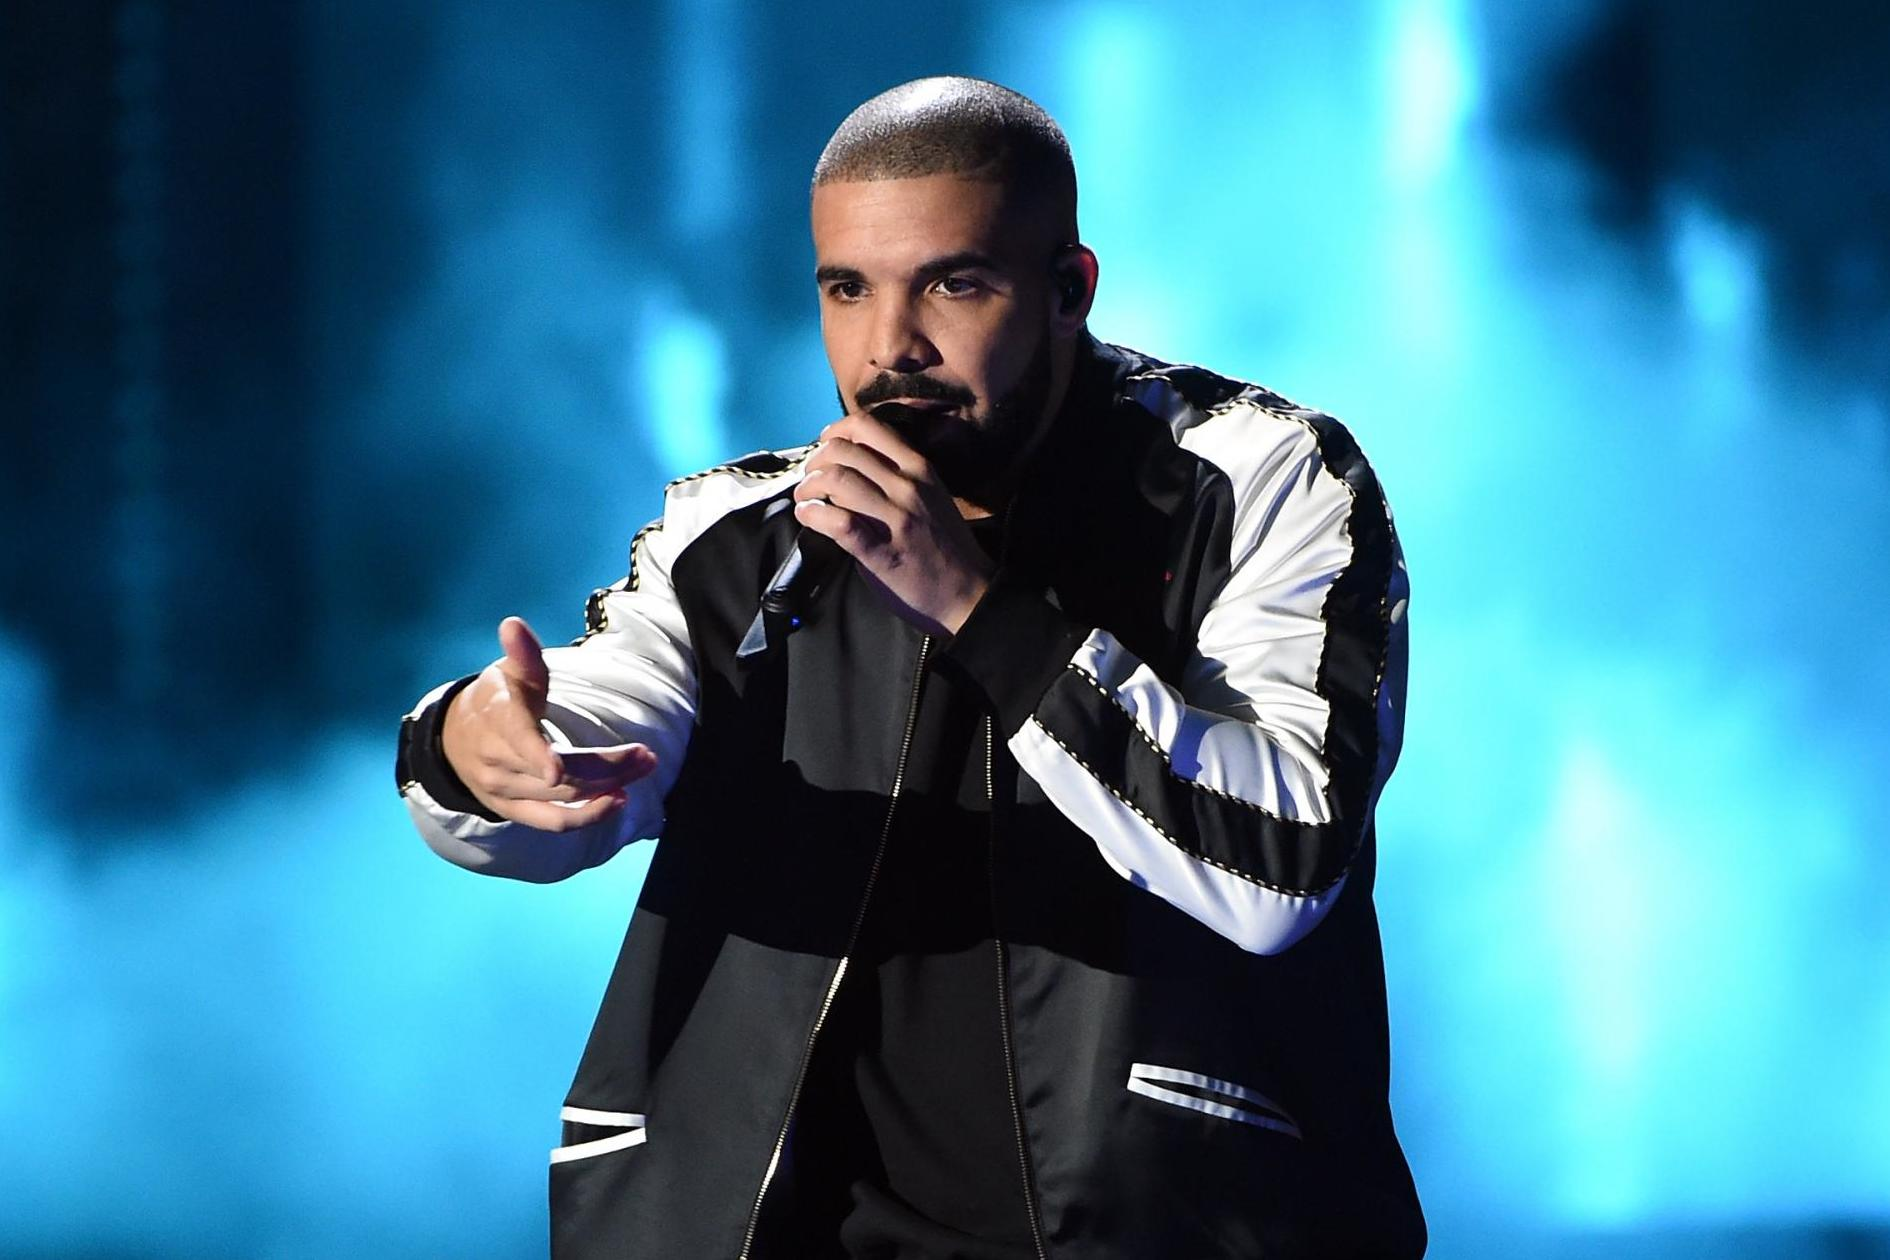 Drake pays tribute to Nipsey Hussle at O2 Arena show